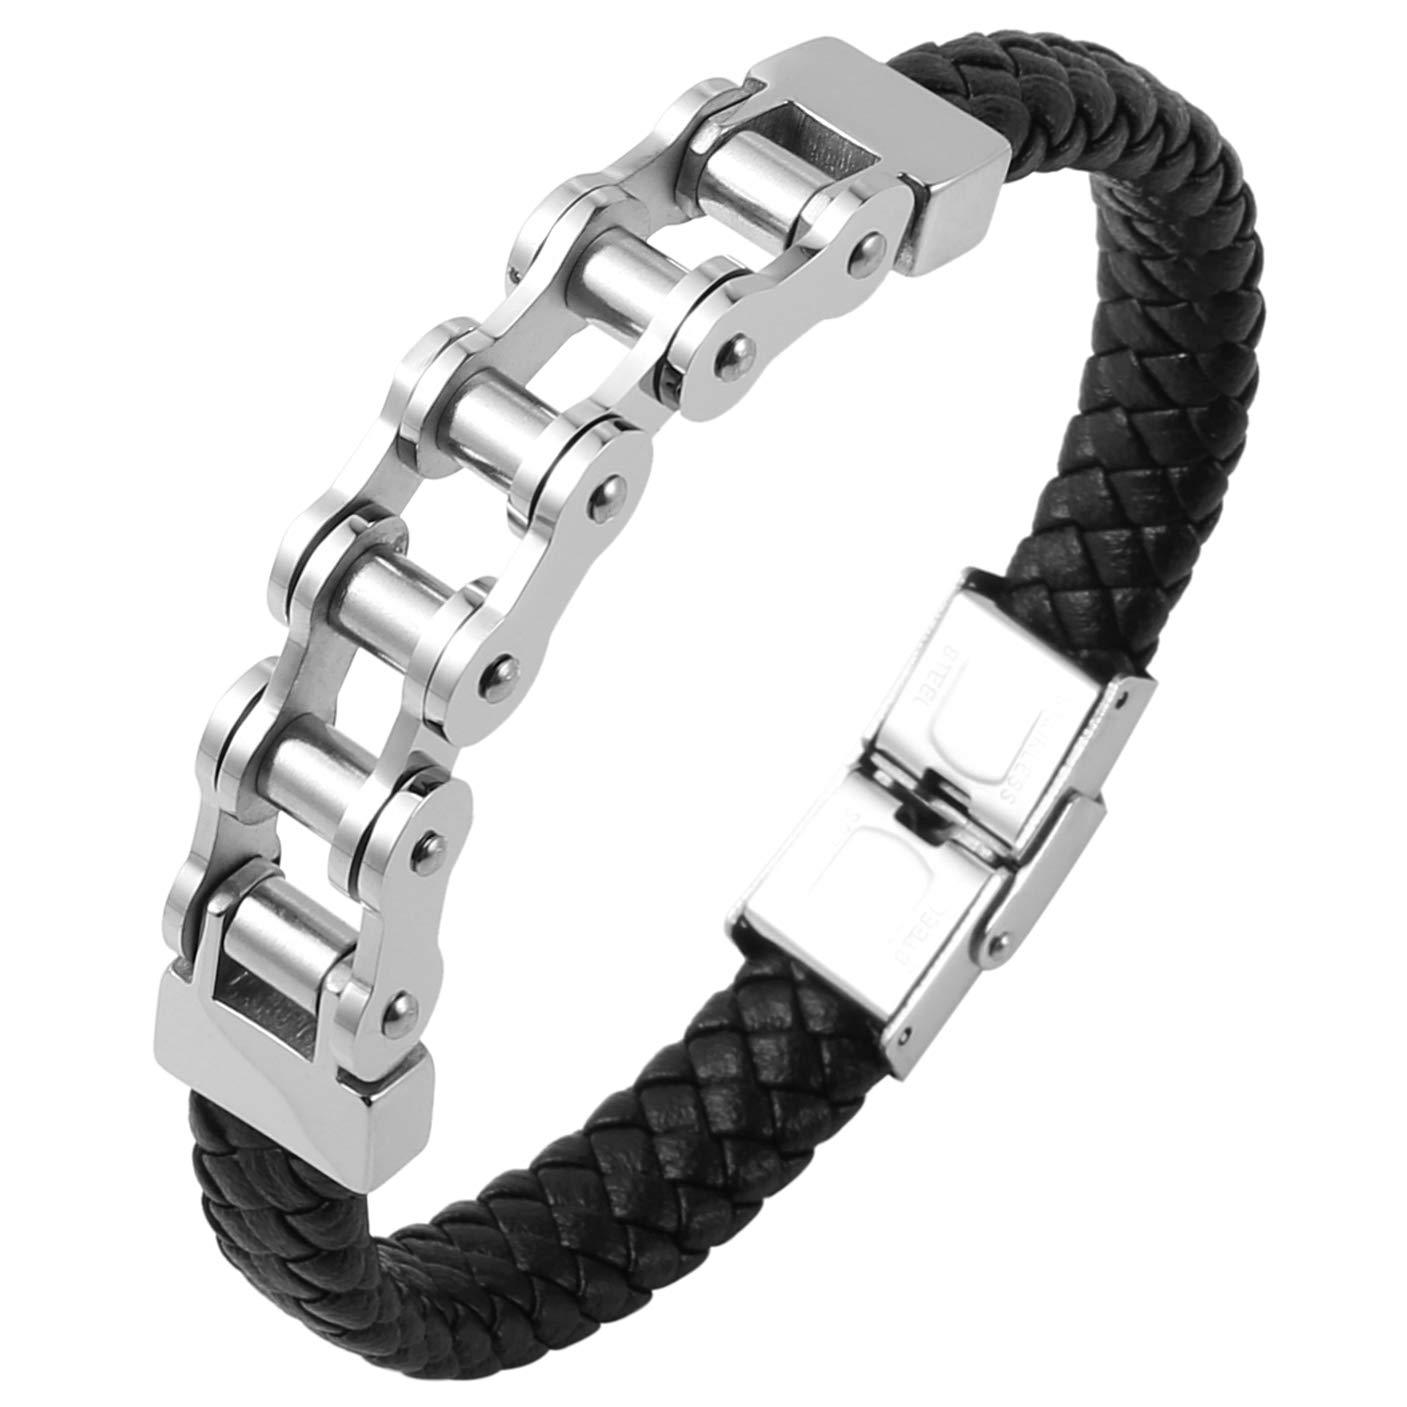 Hzman Genuine Leather Bracelet Stainless Steel Bicycle Chain Punk Biker Mens @ Sons of Odin™ -Men's